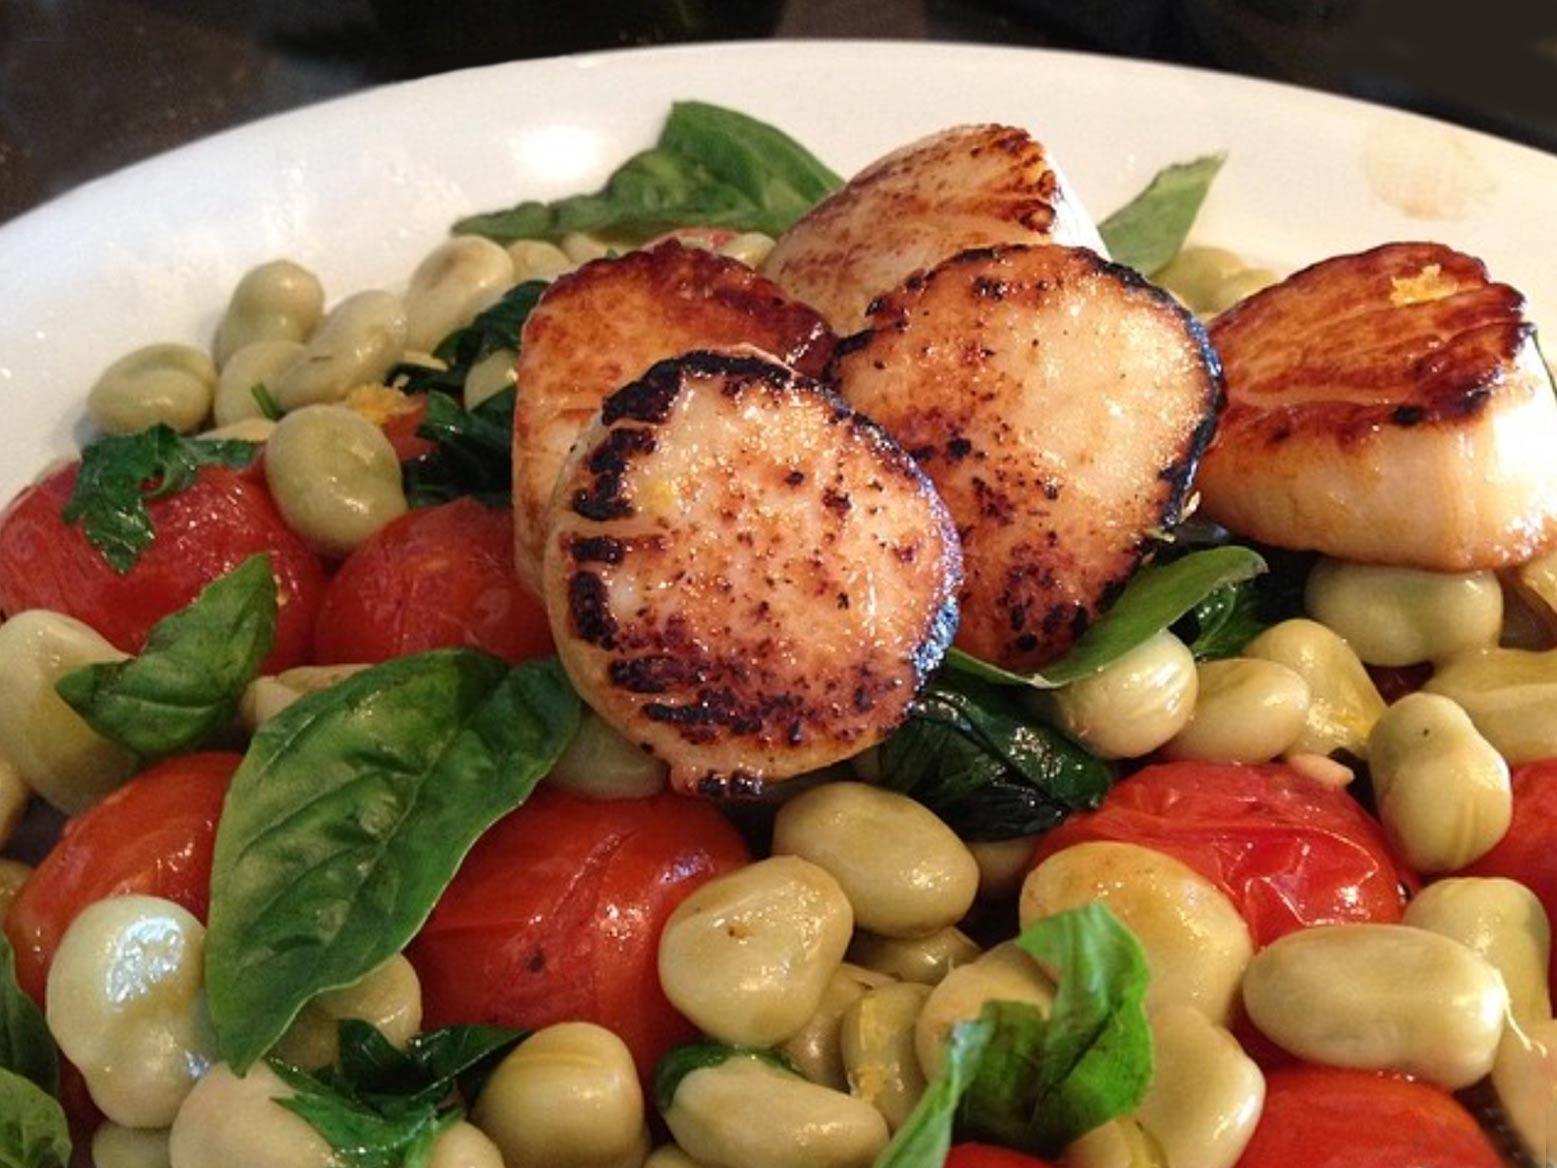 Grilled scallops on plate with vegatables.